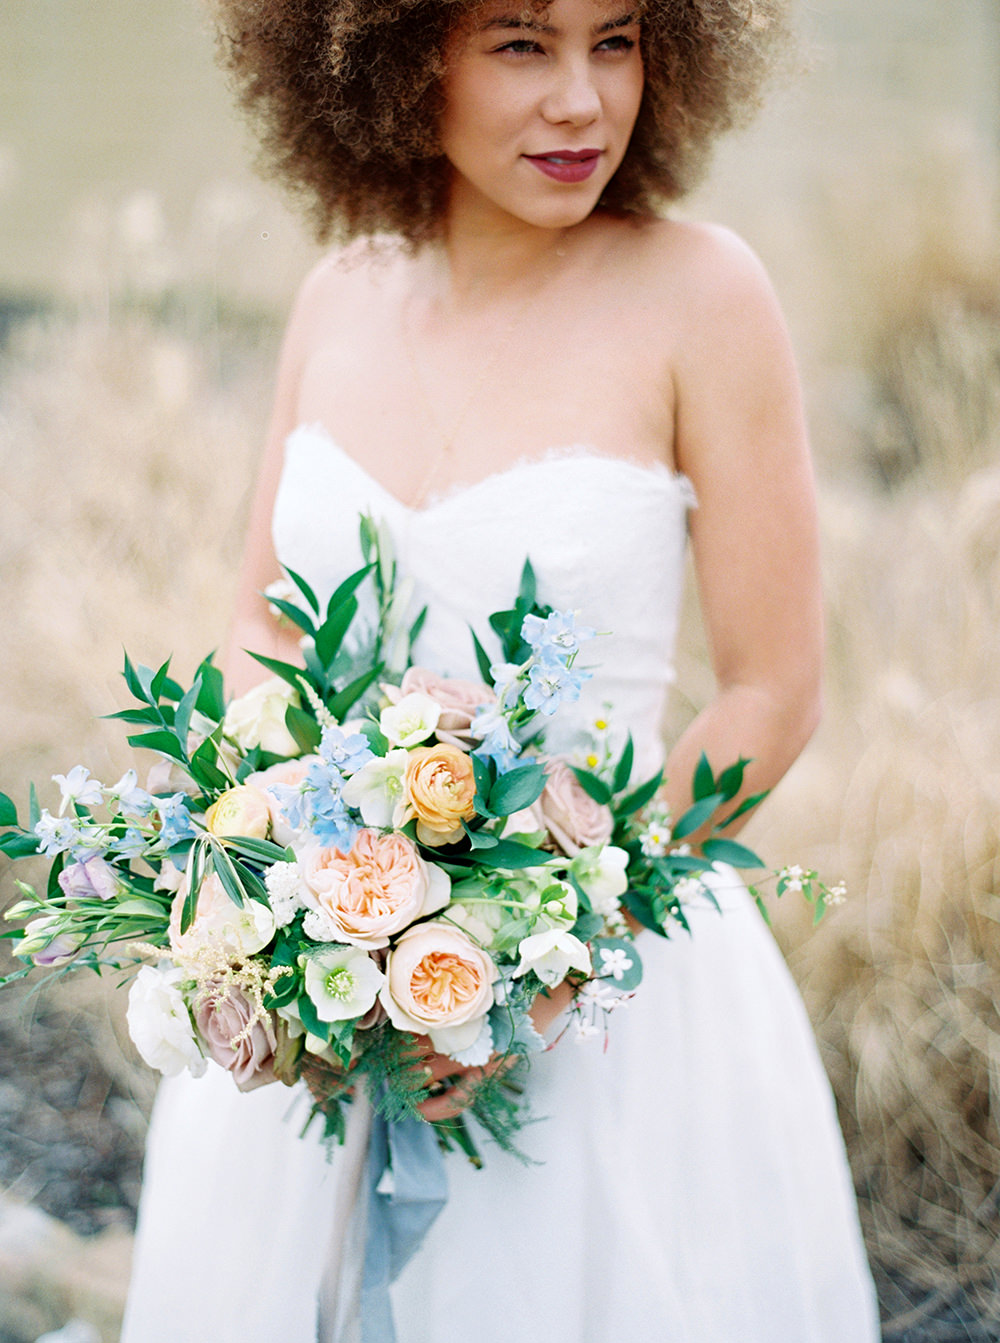 lush bridal bouquets - photo by Photos by Heart https://ruffledblog.com/downtown-birmingham-spring-wedding-inspiration